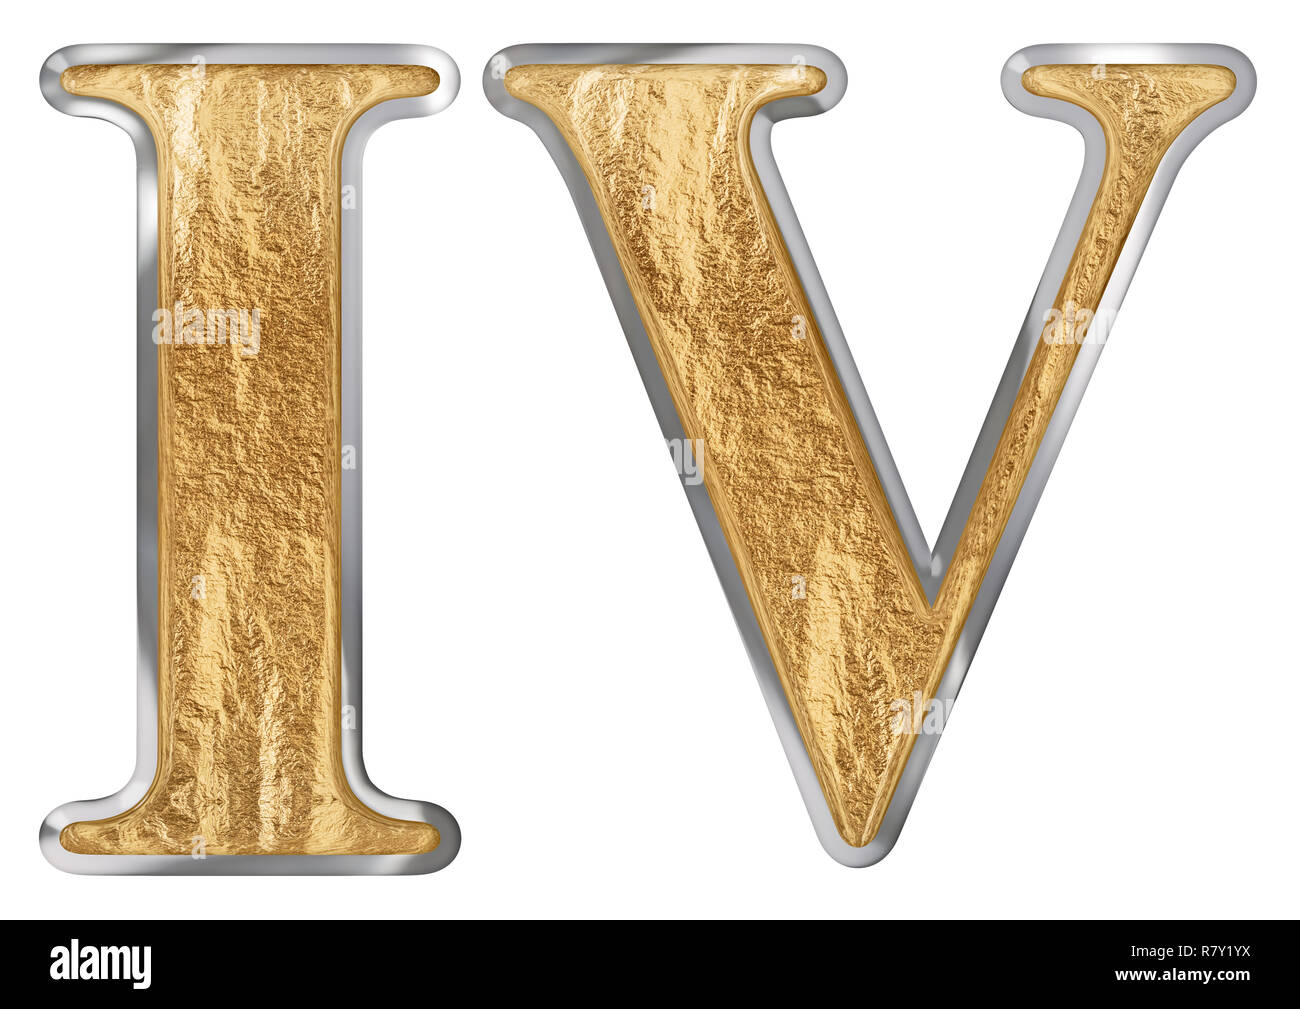 How To Write Four In Roman Numerals